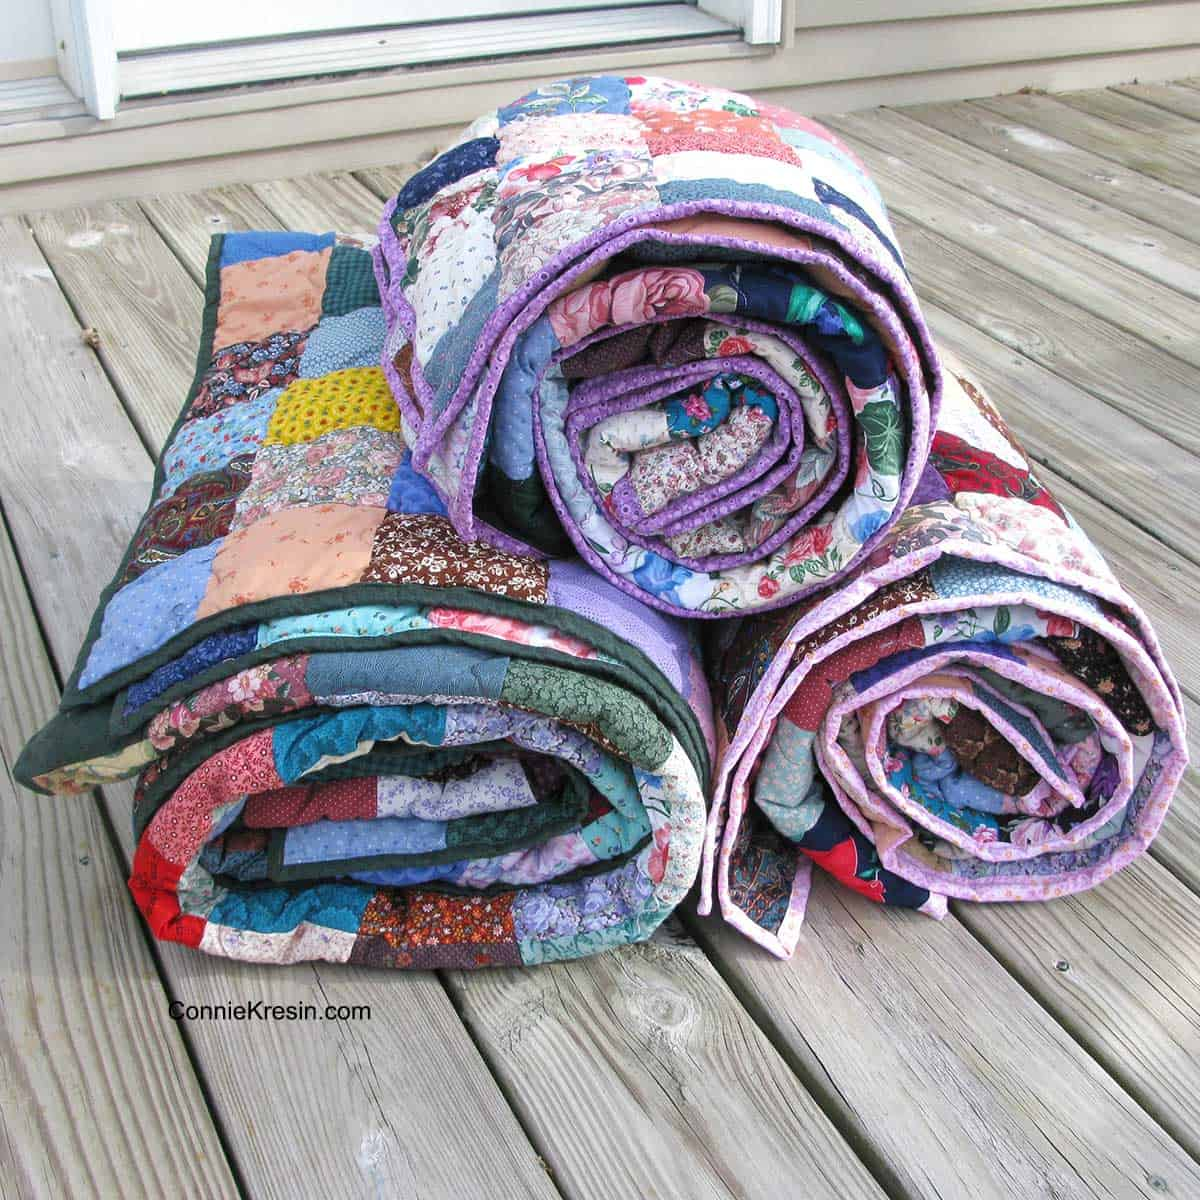 Added binding to the scrappy quilts